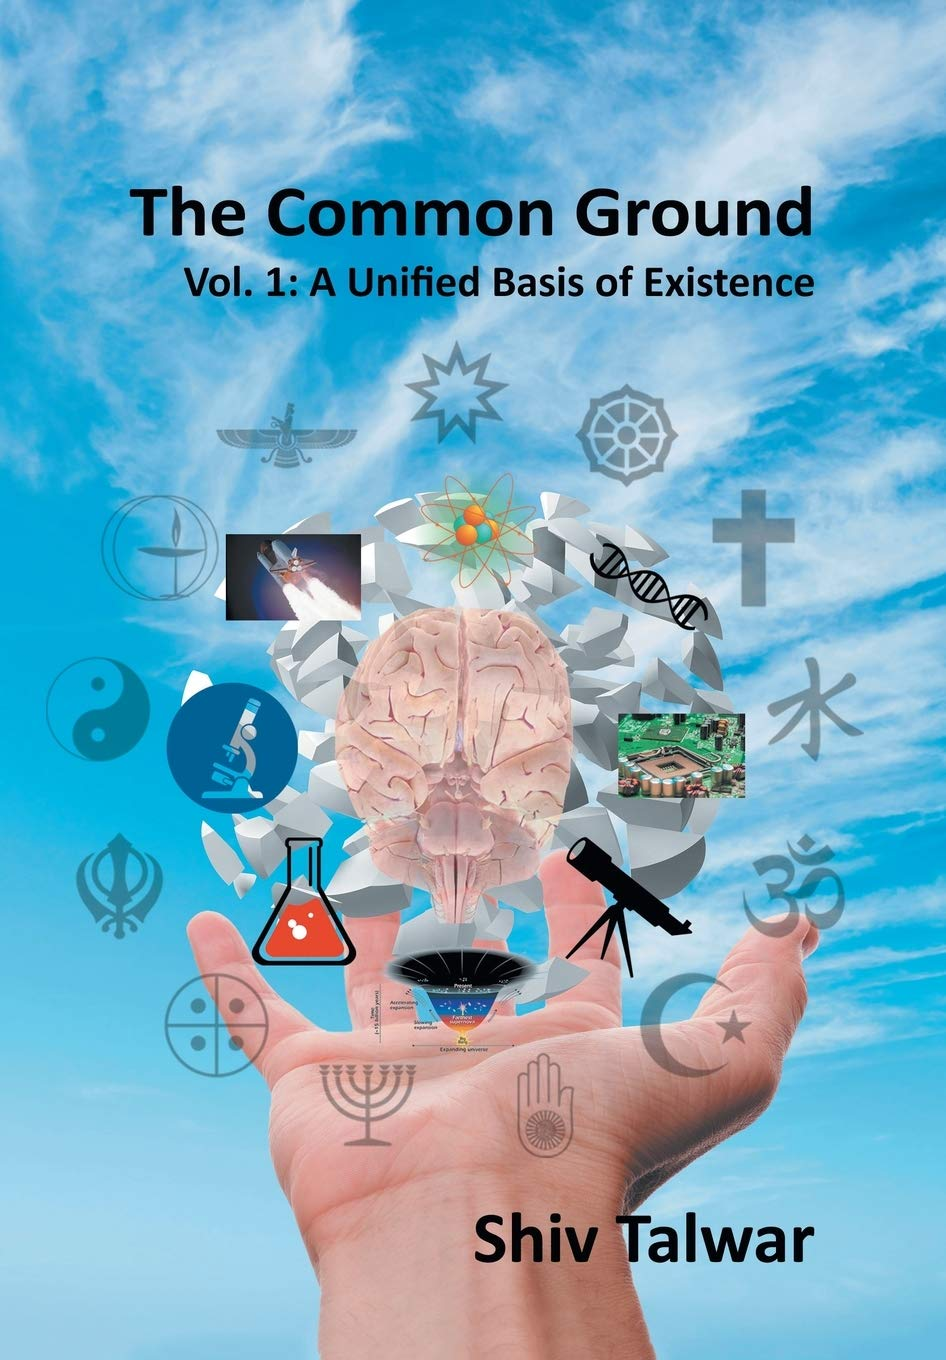 The Common Ground by Xlibris Corp